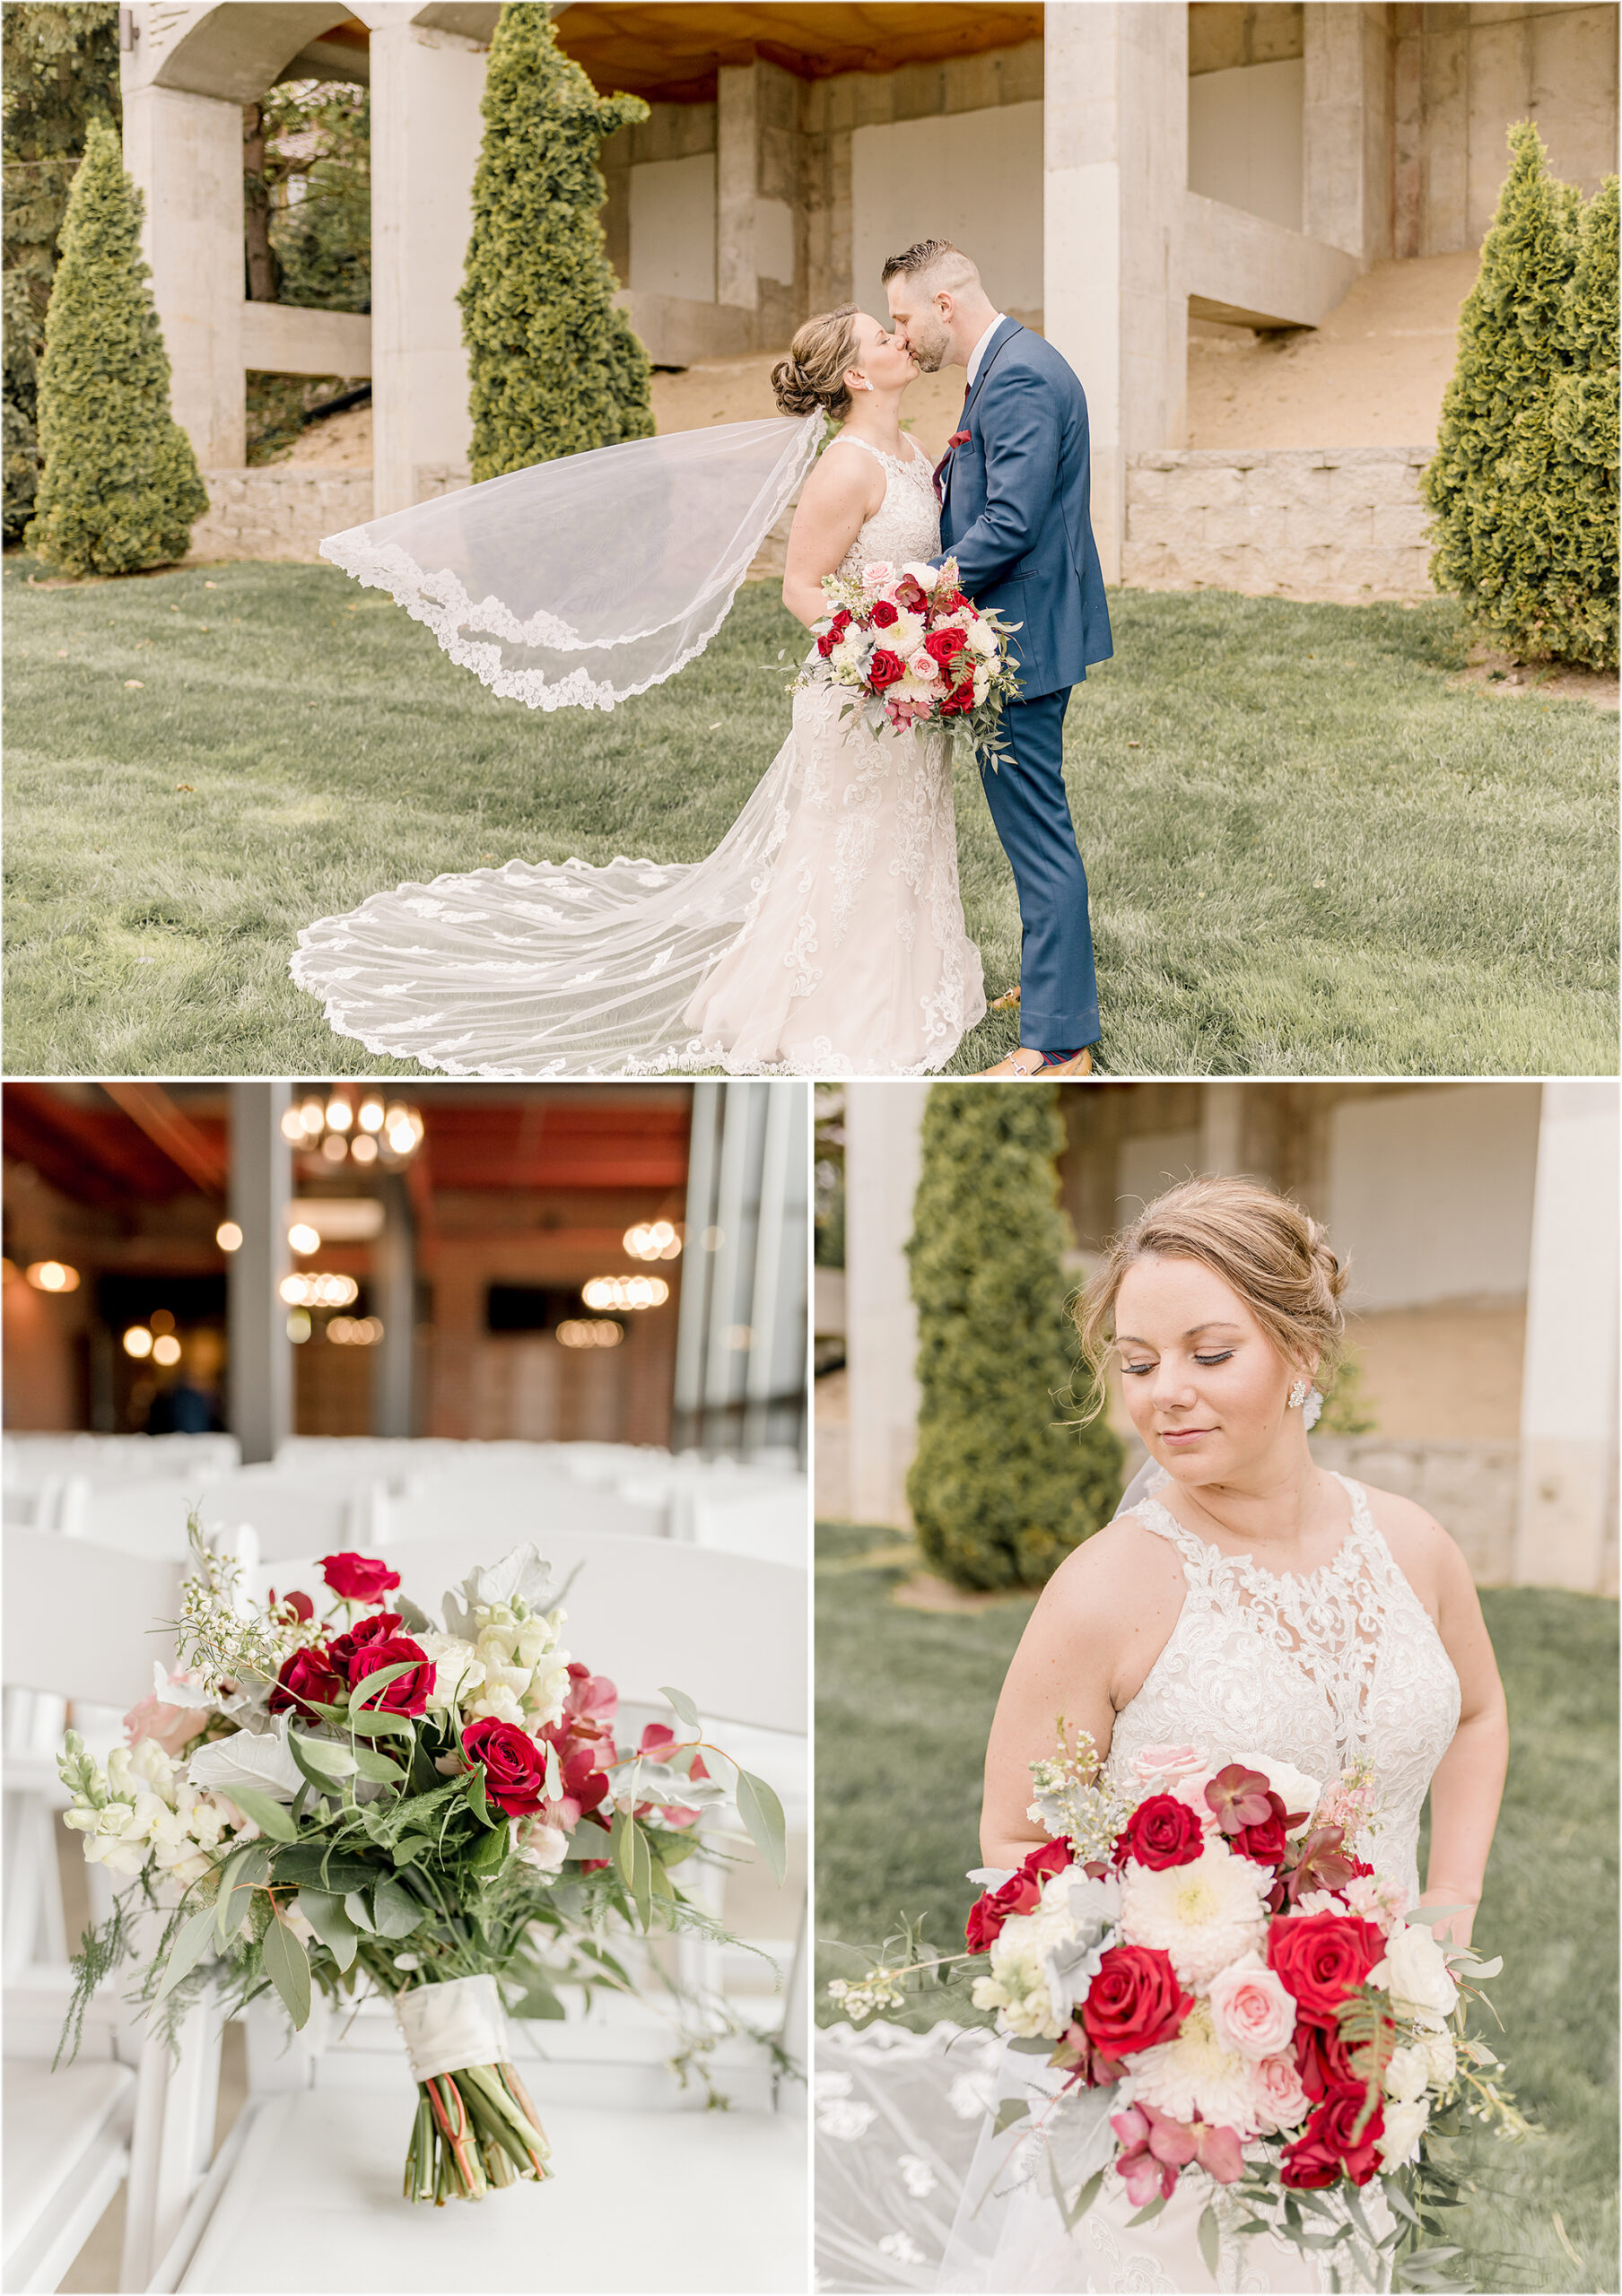 Lindsay-Adkins-Photography-Top10BridalBouquets2019-3